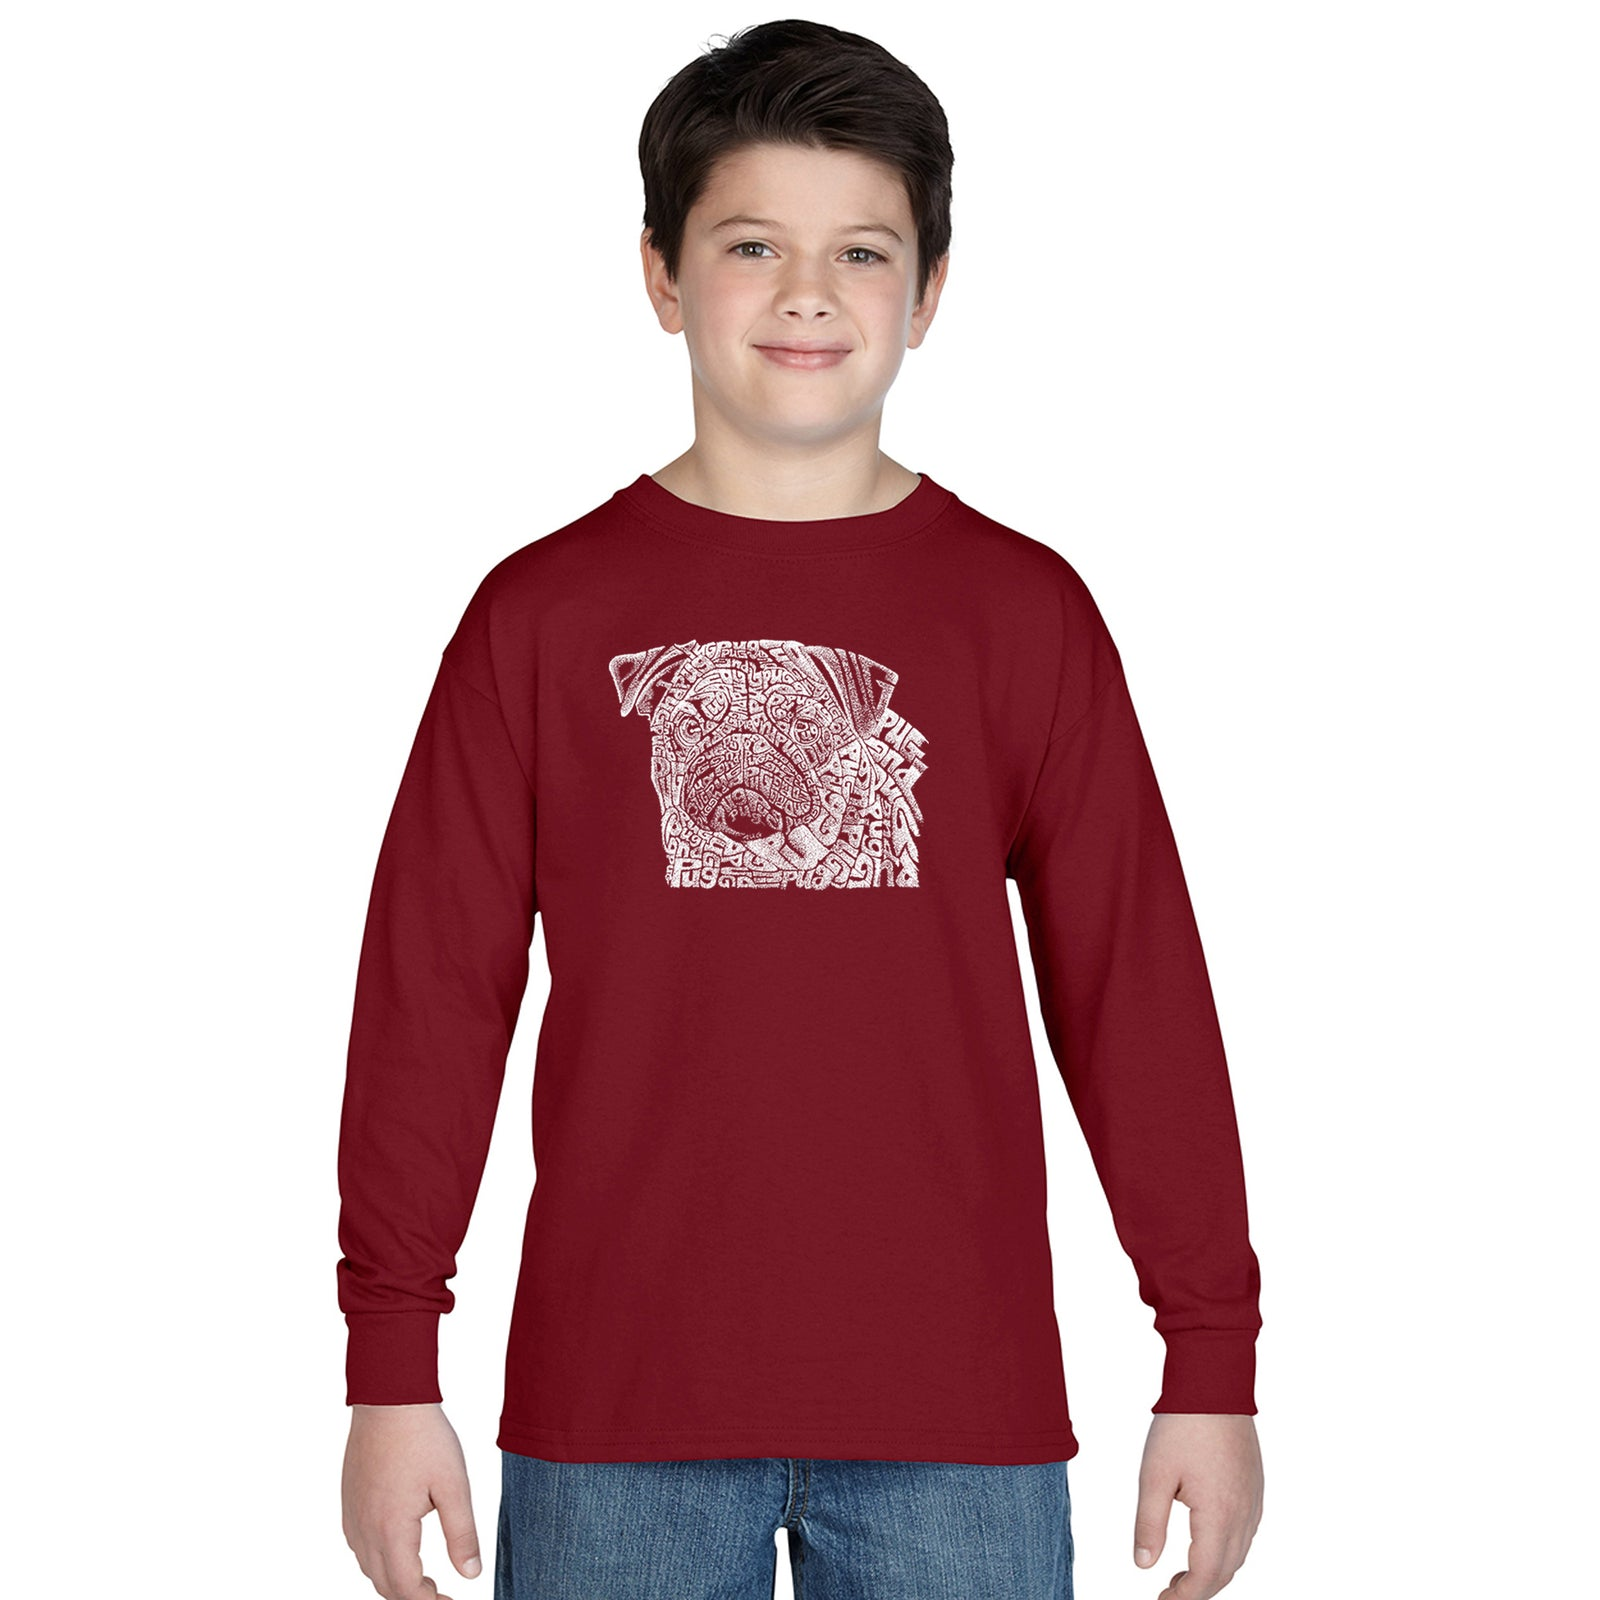 Boy's Long Sleeve - Pug Face